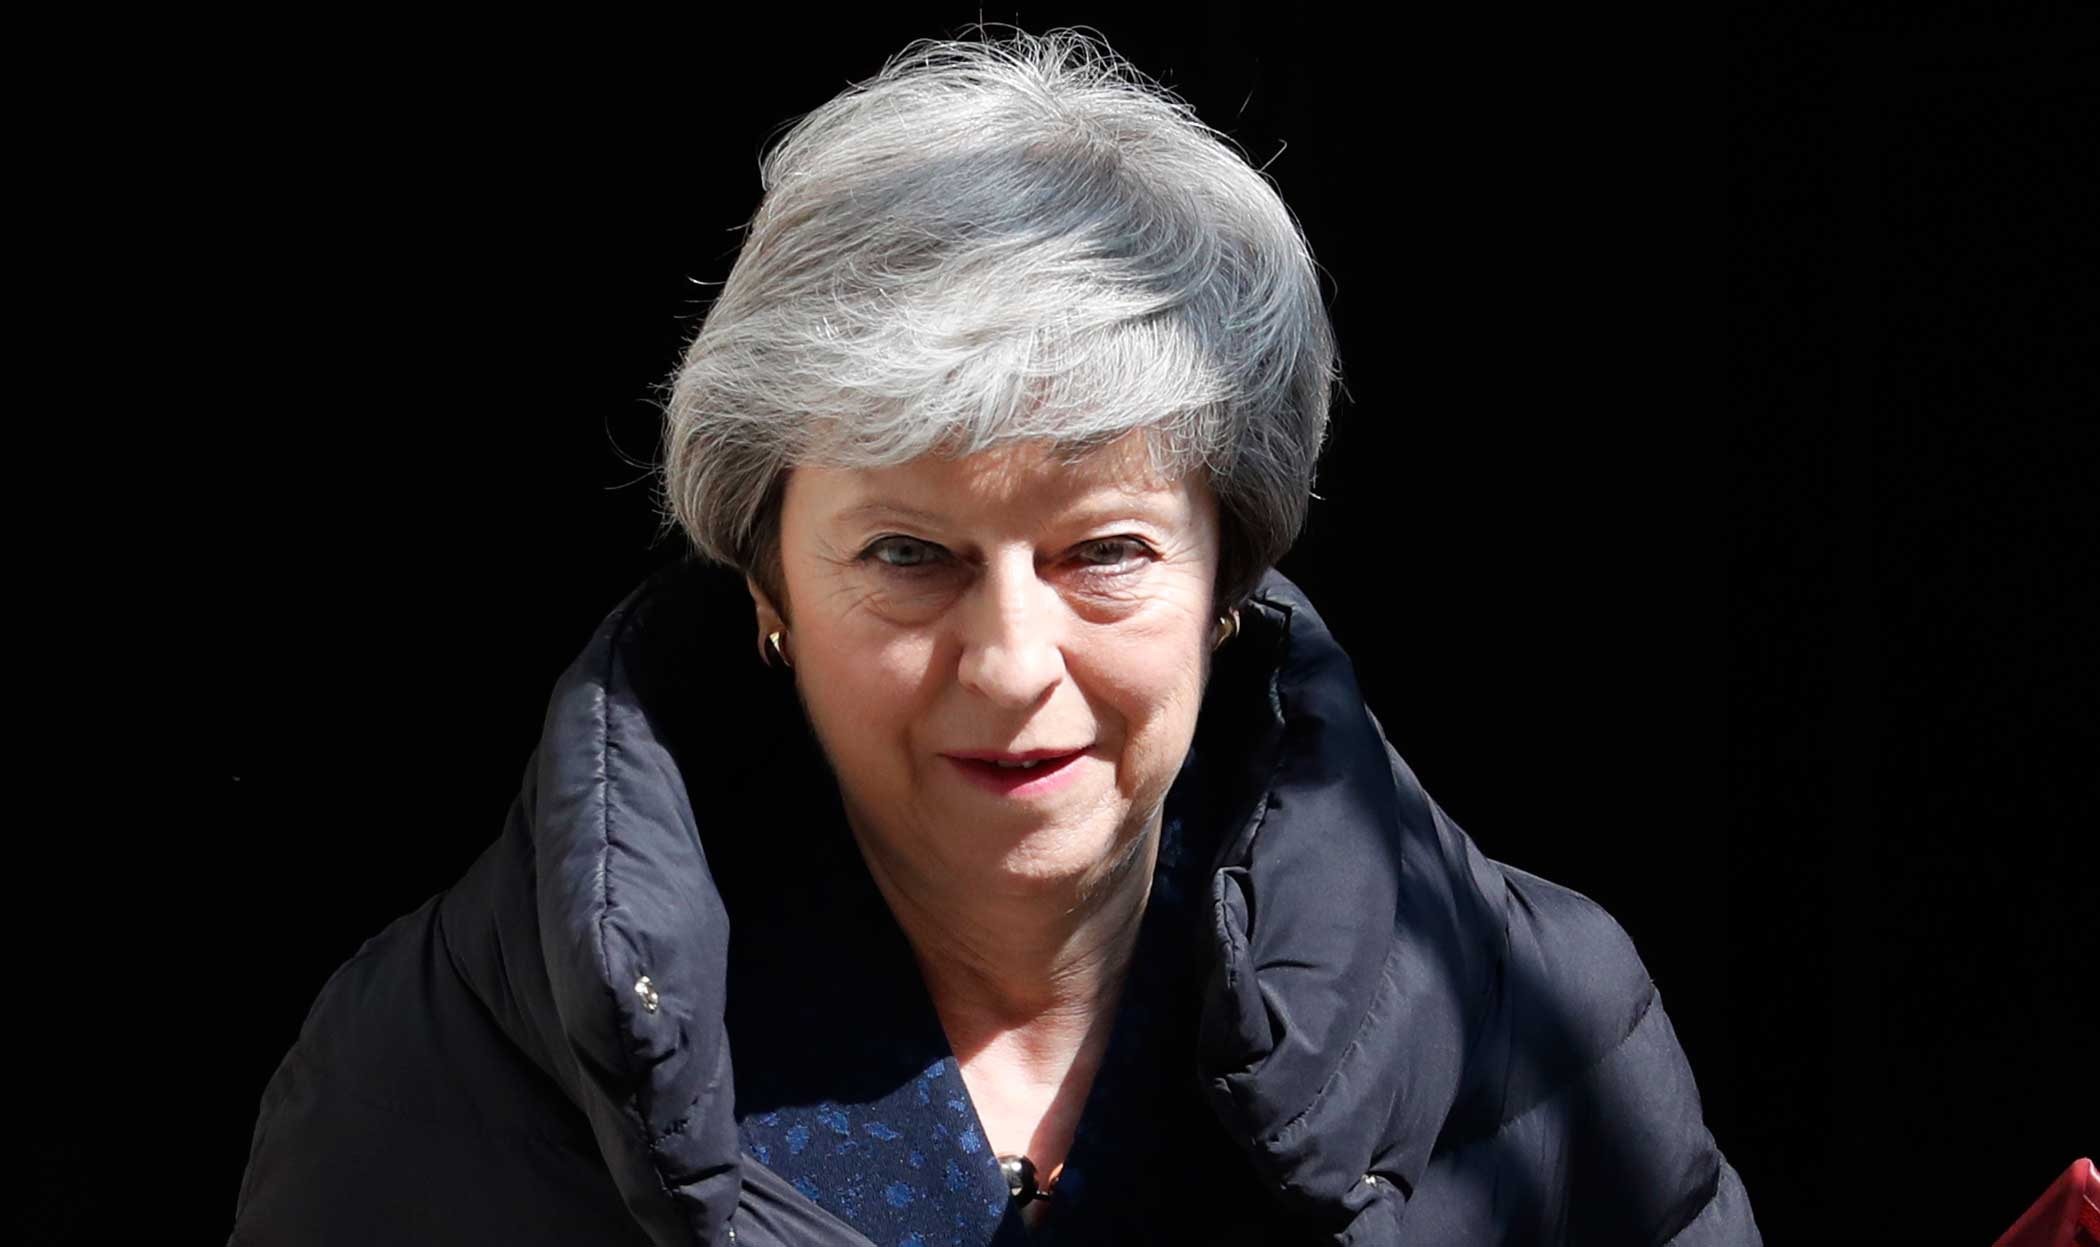 Theresa May leaves 10 Downing Street in London on May 1, 2019.